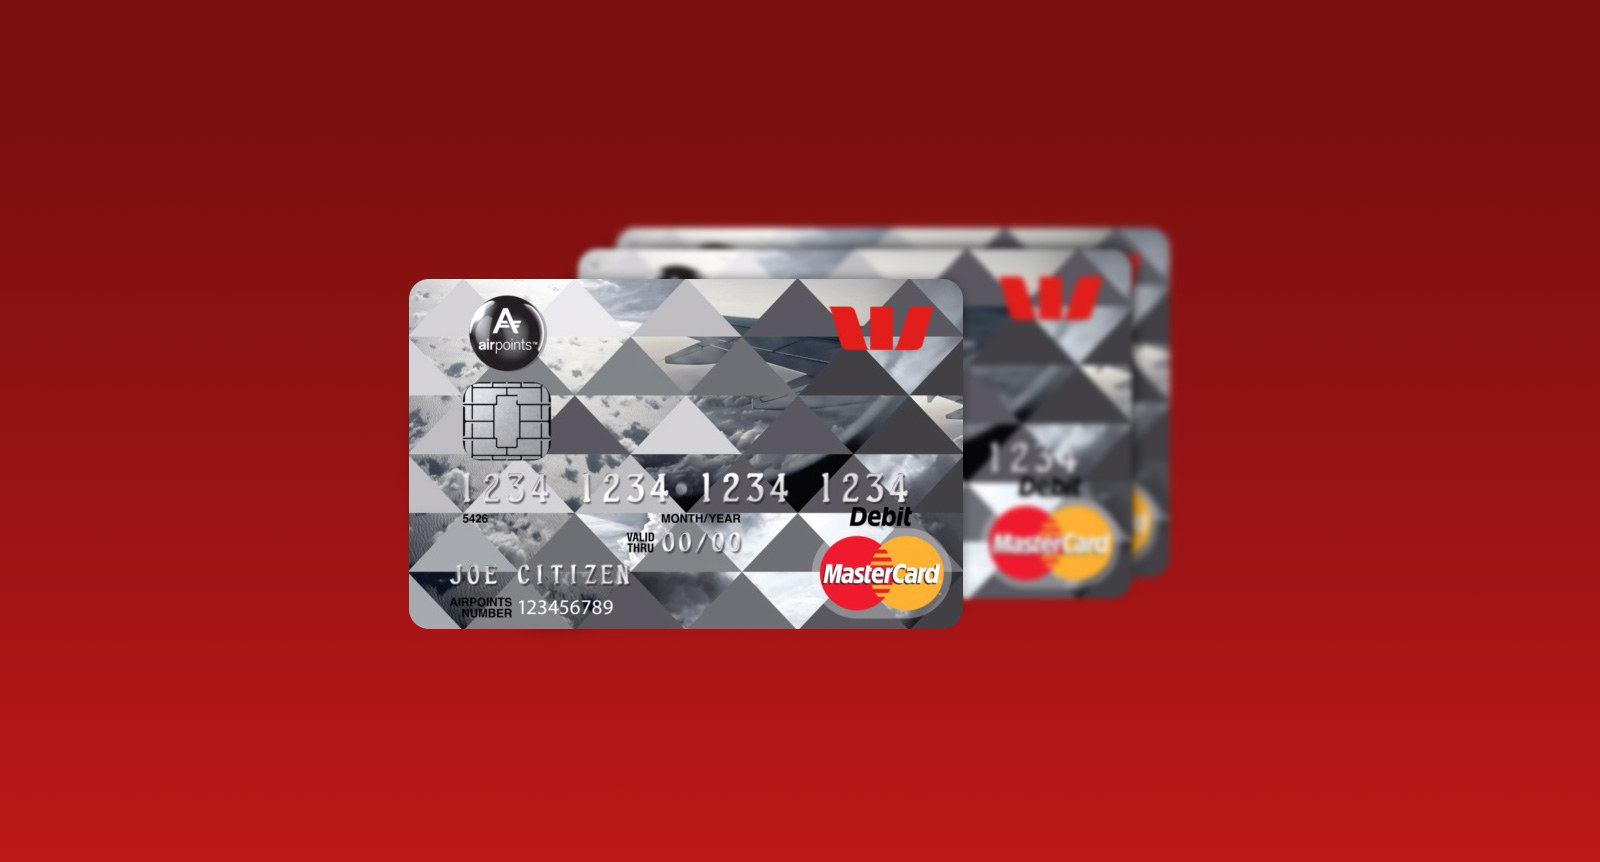 Westpac Airpoints Debit MasterCard - Nexus Research